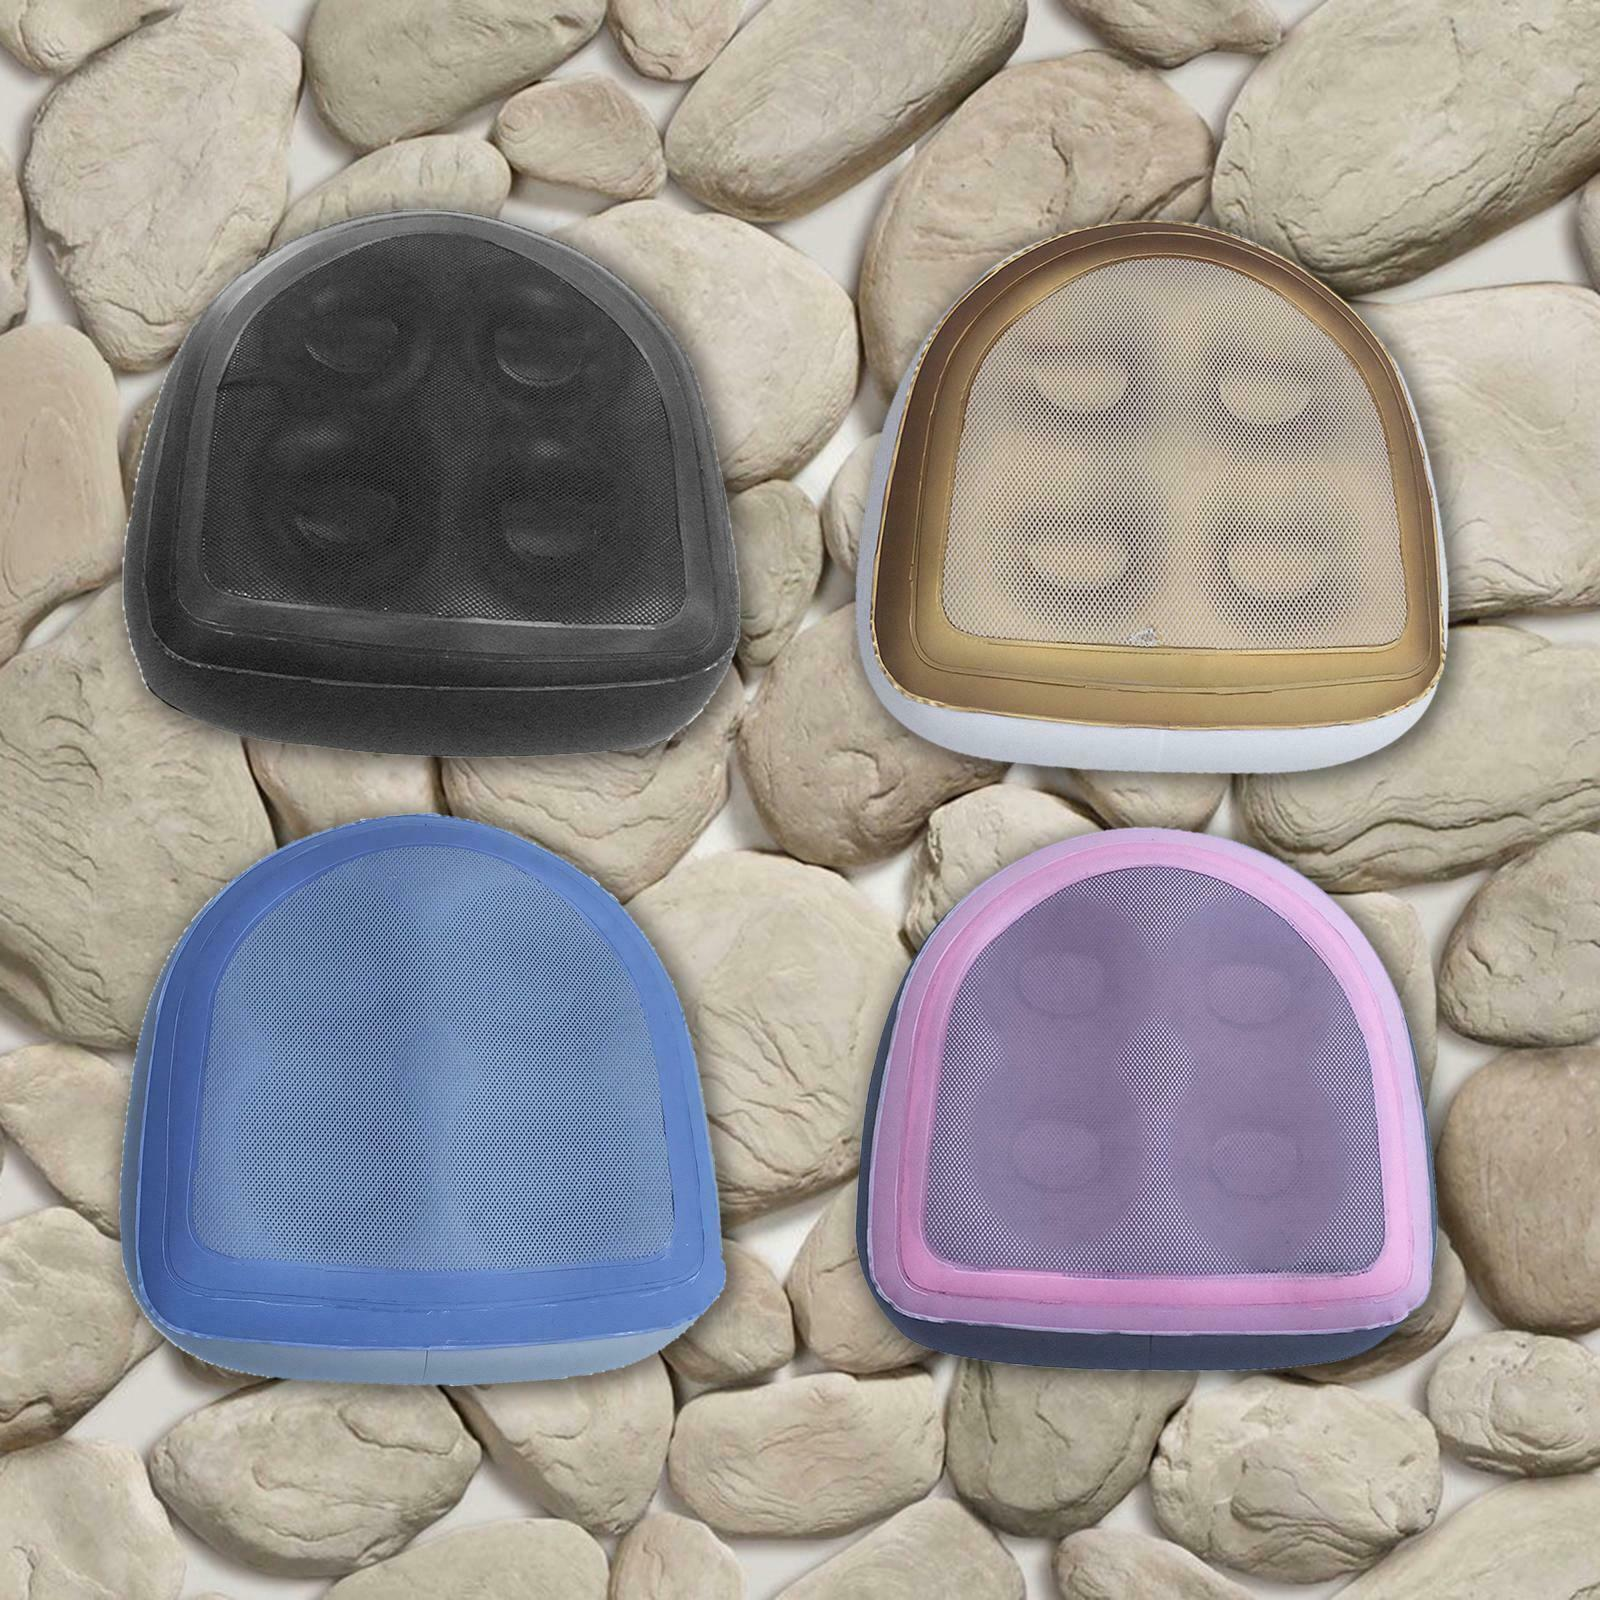 Hot Tub Spa Increase Booster Seat Cushion Inflatable Pad for Adults Kids